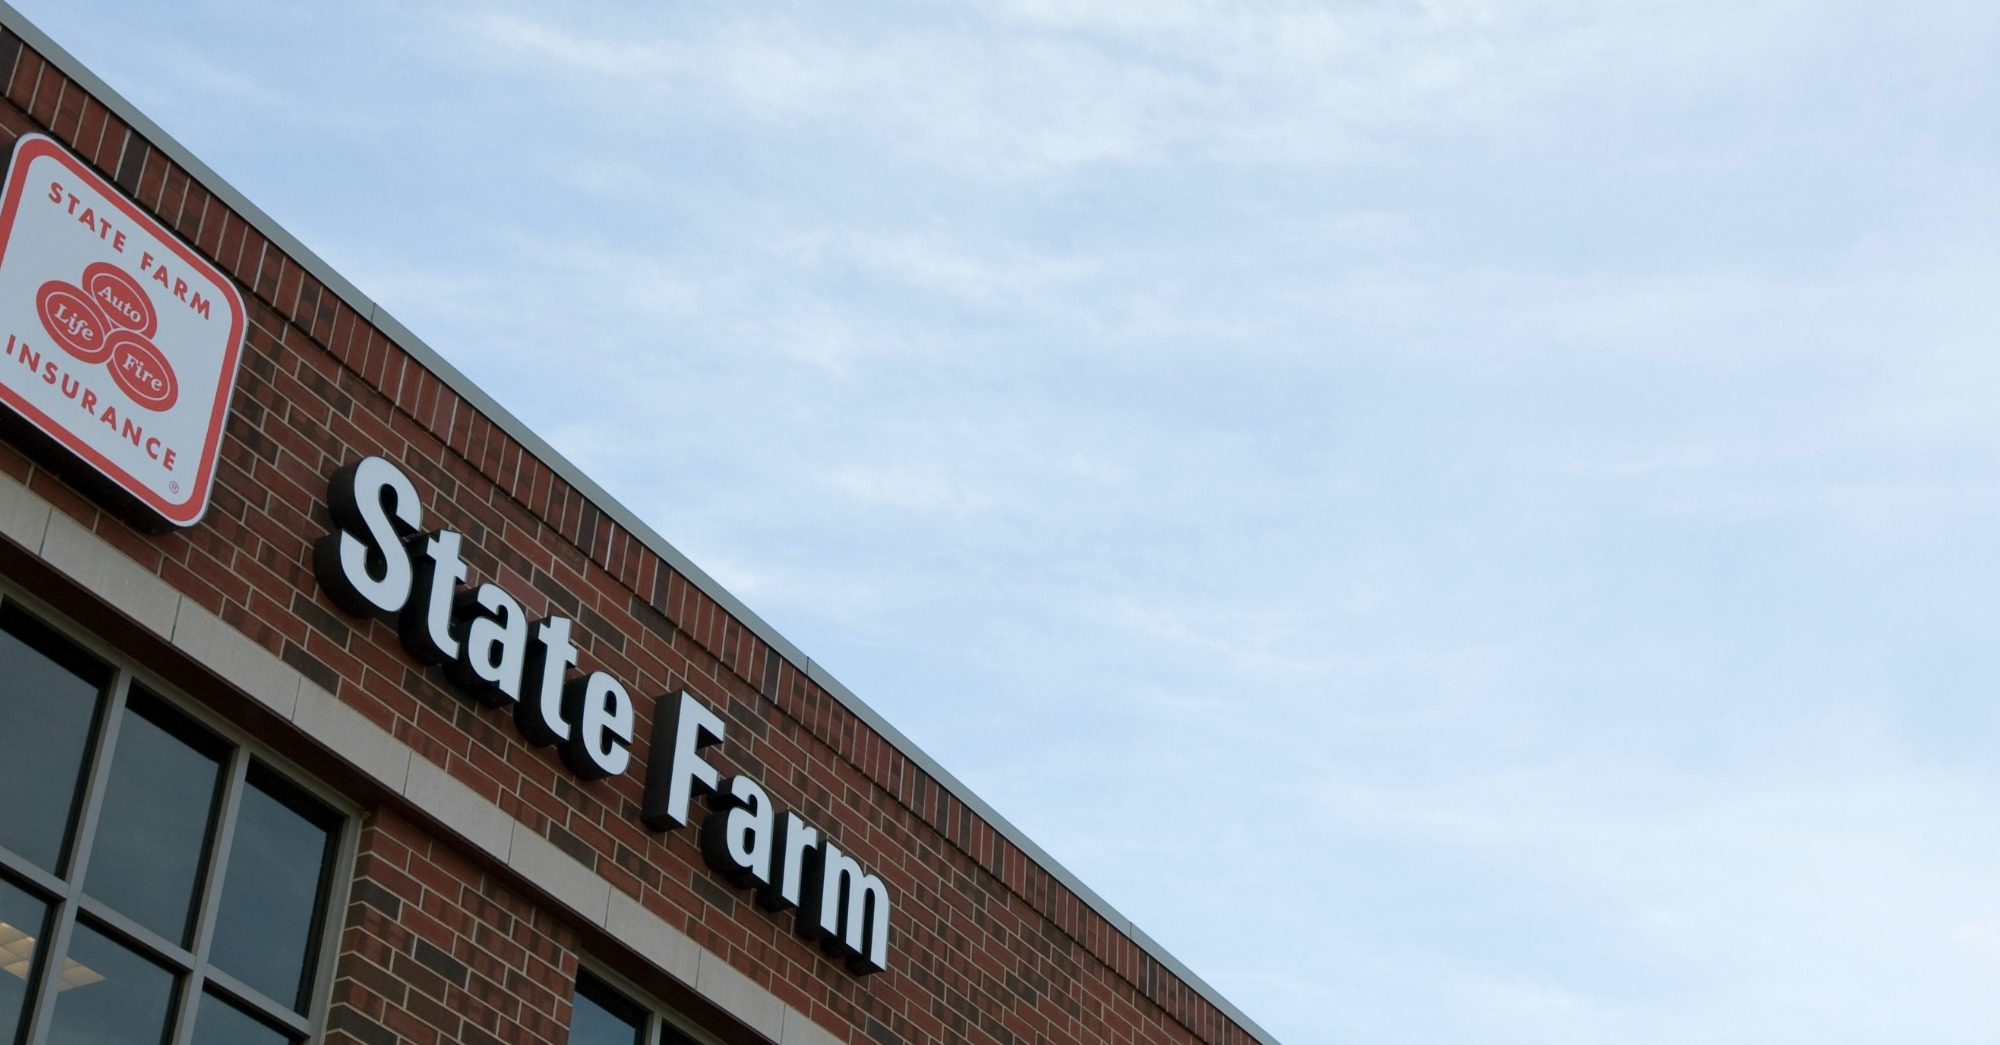 State Farm Research and Development Center